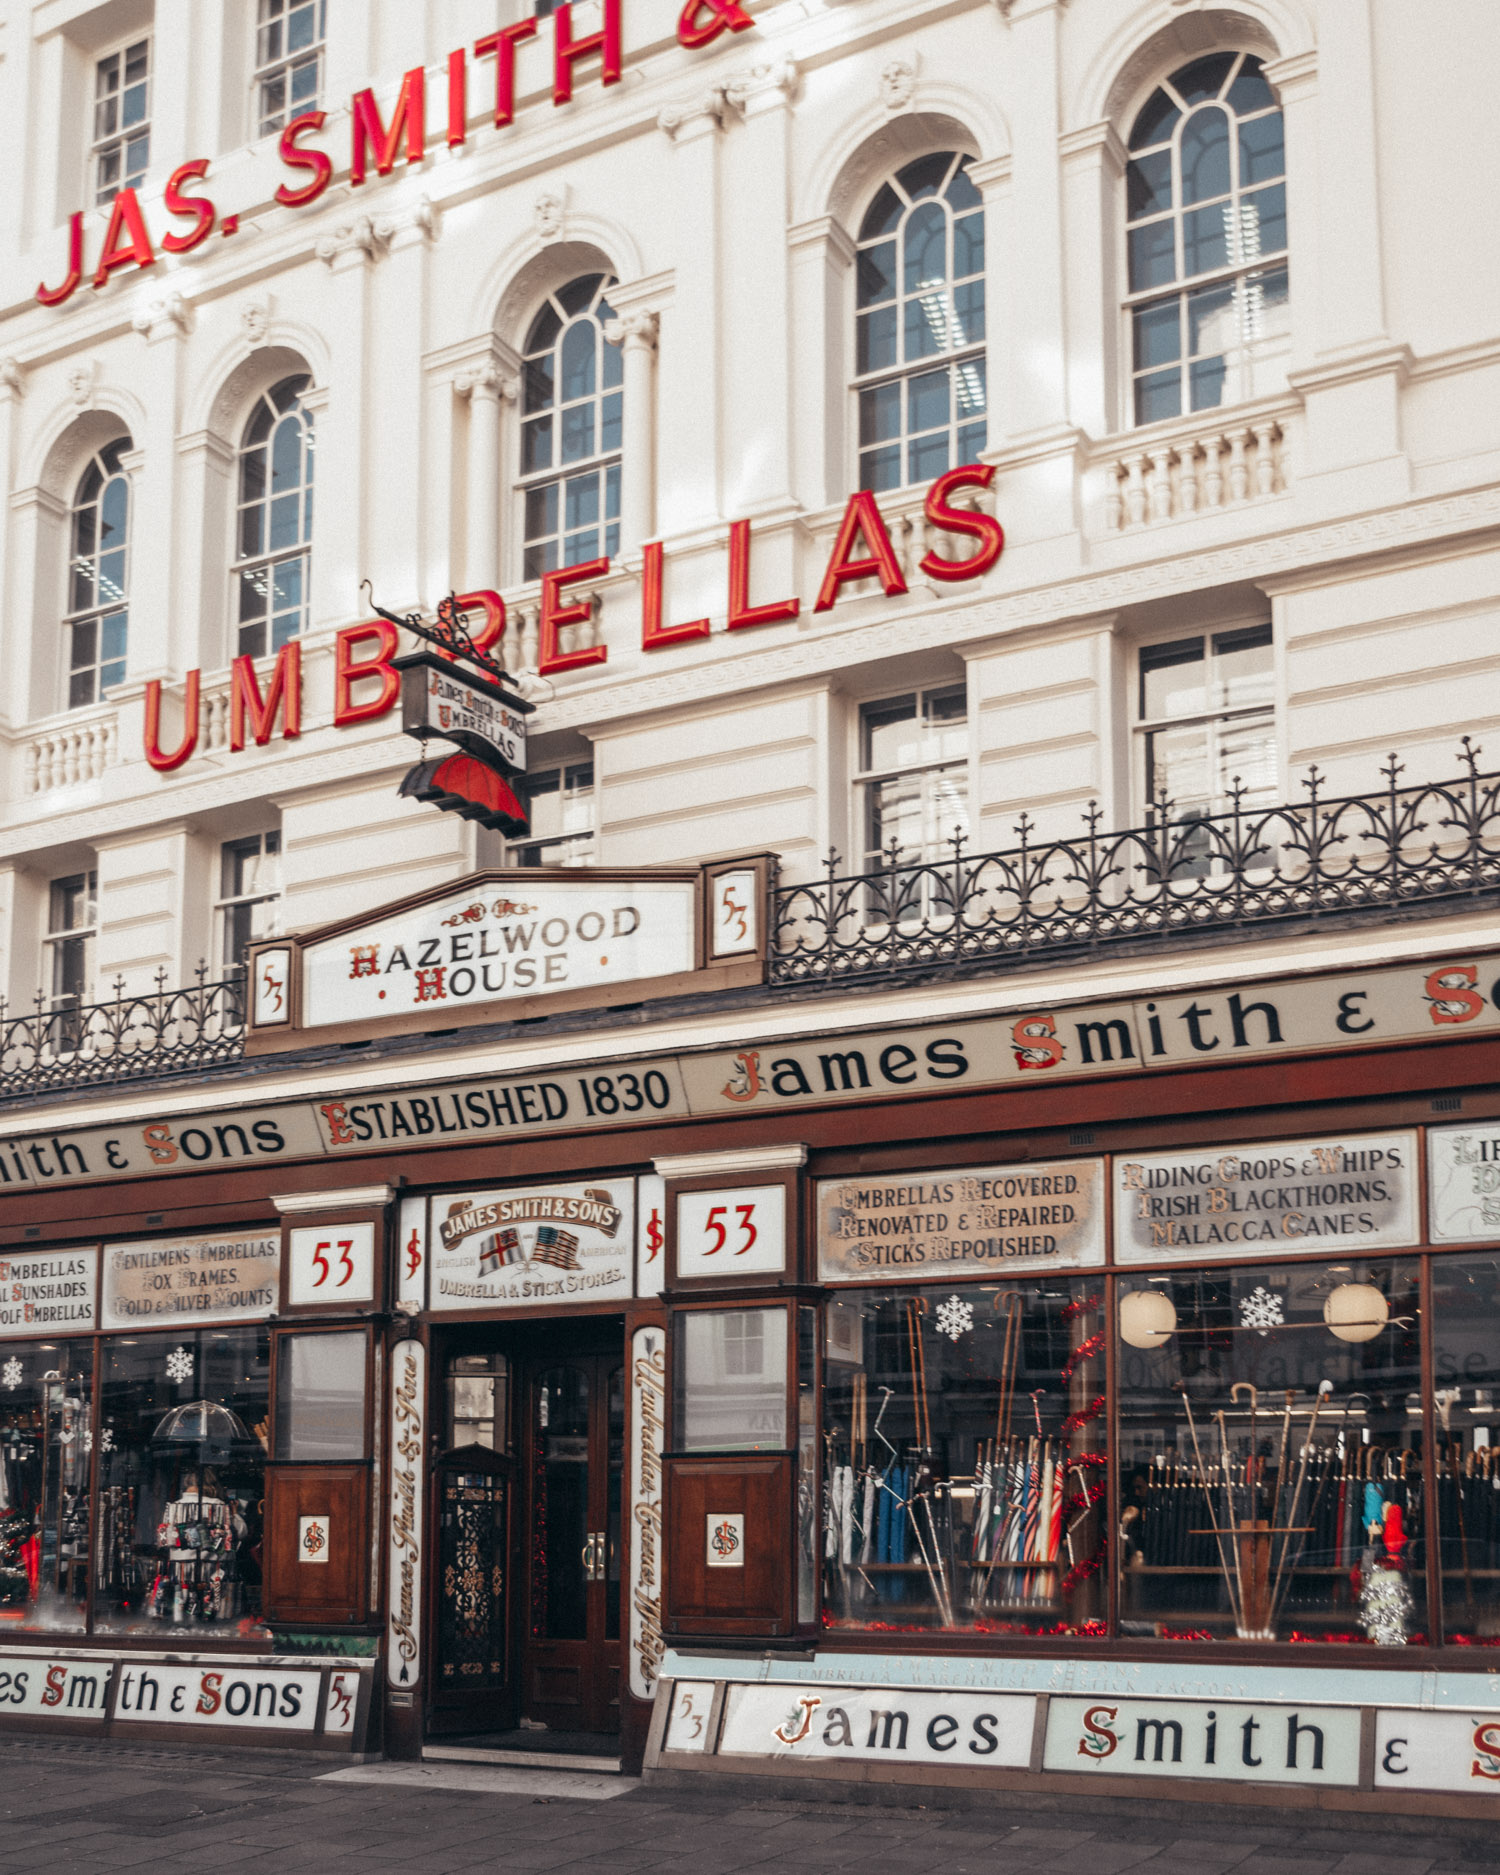 James Smith & Sons Umbrella Shop in London, England